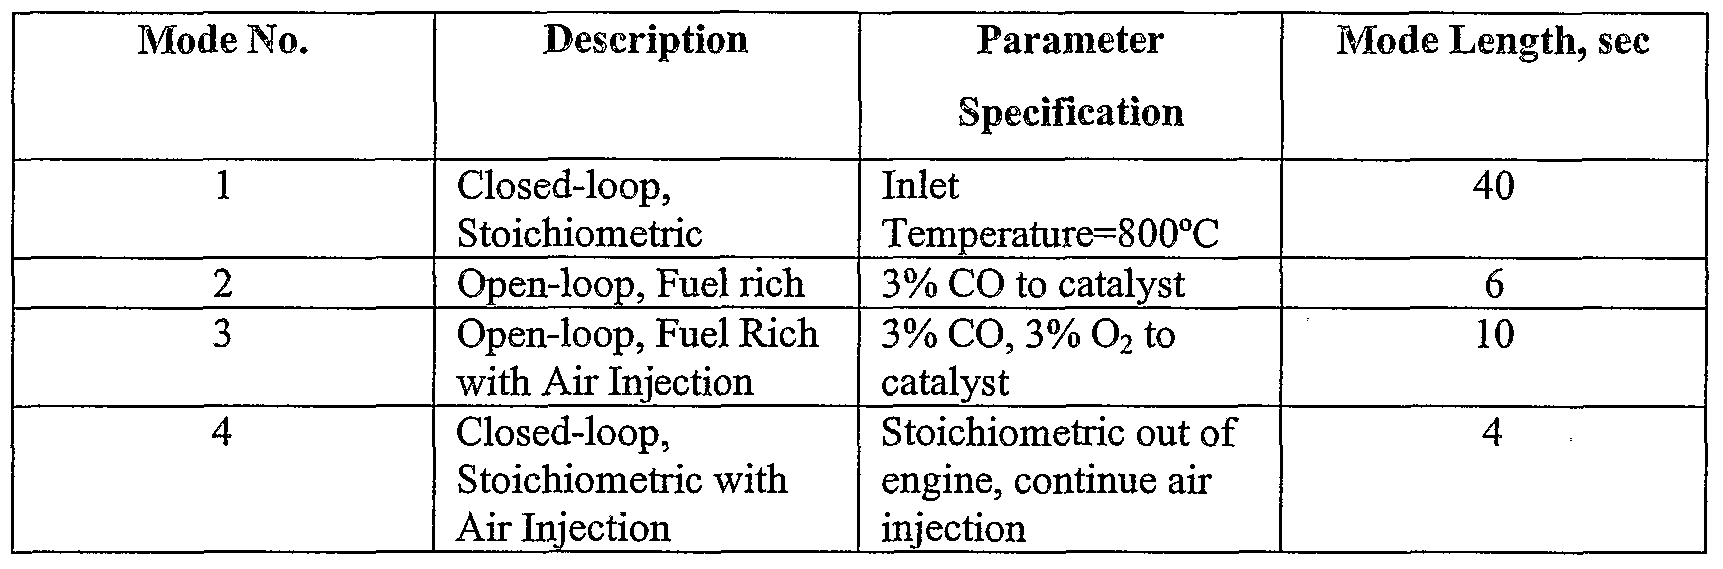 WO2006020735A2 - Testing using a non-engine based test